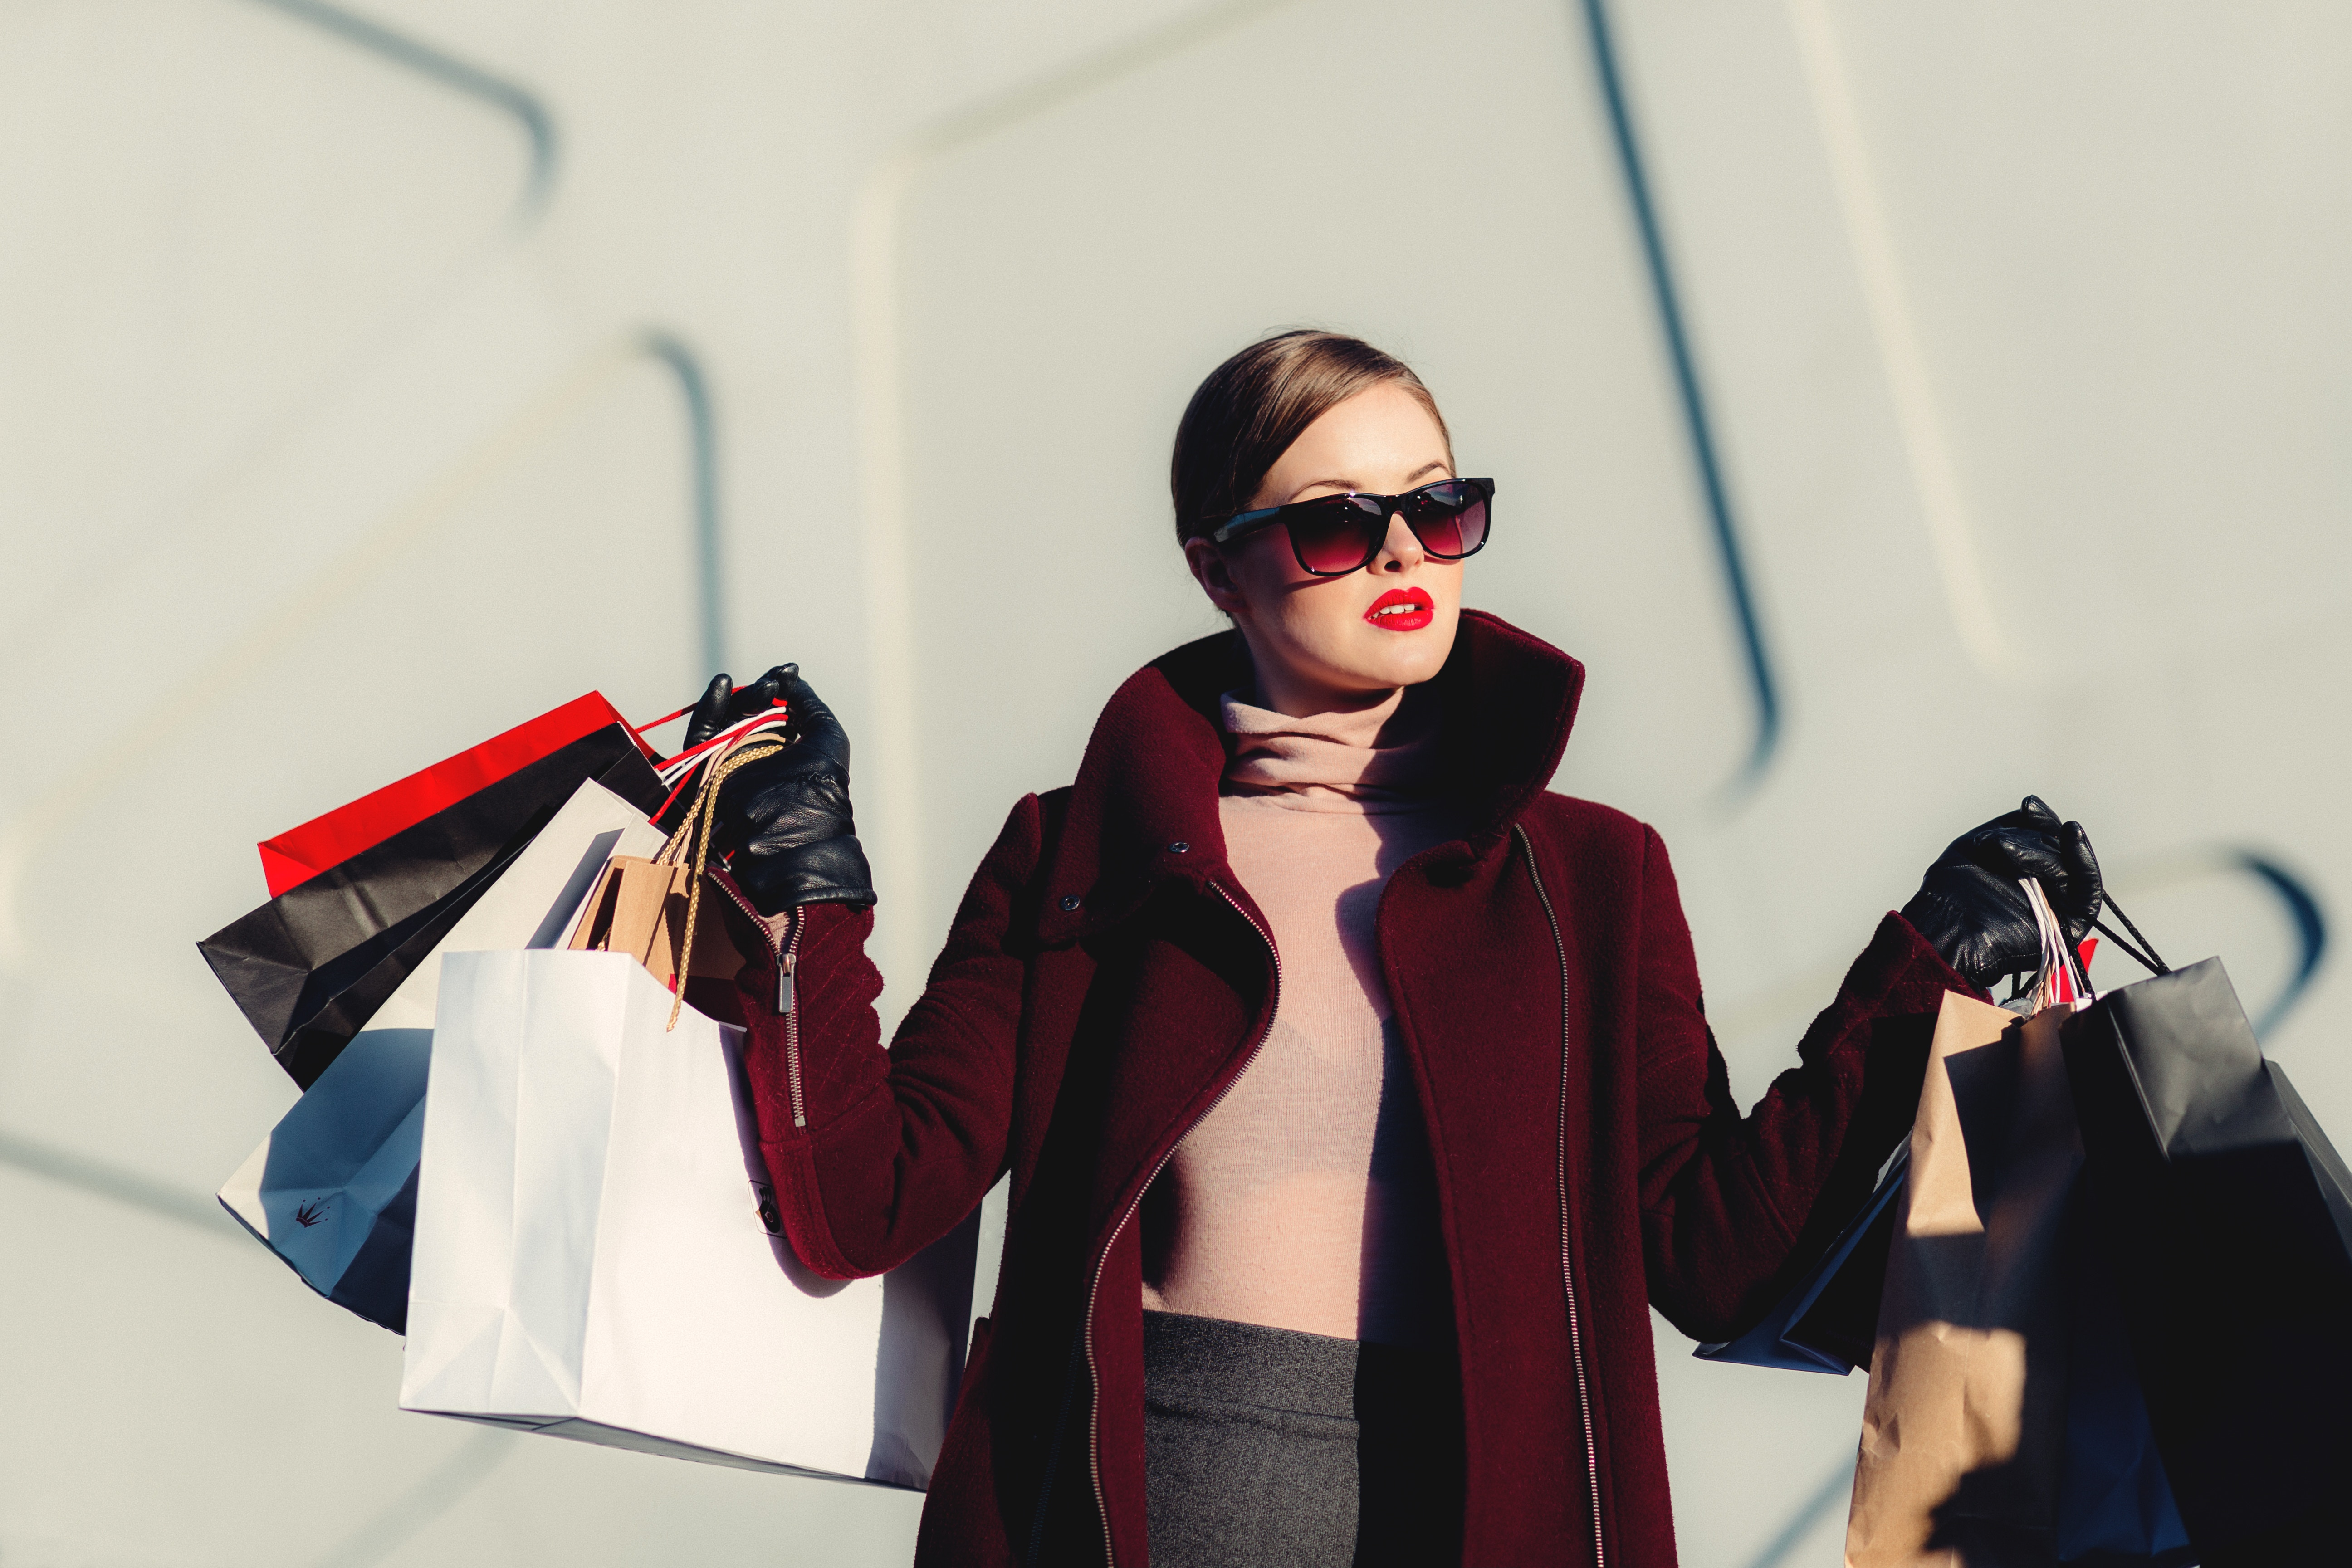 a woman in a red coat and sunglasses in front of a white building holding up lots of shopping bags in both hands